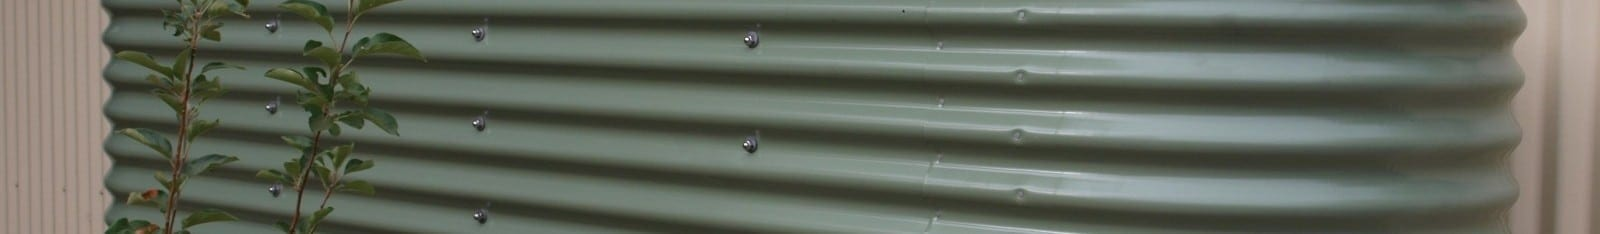 Slimline Rainwater Tanks in Perth: 4 Useful Tips to Maximise Their Use